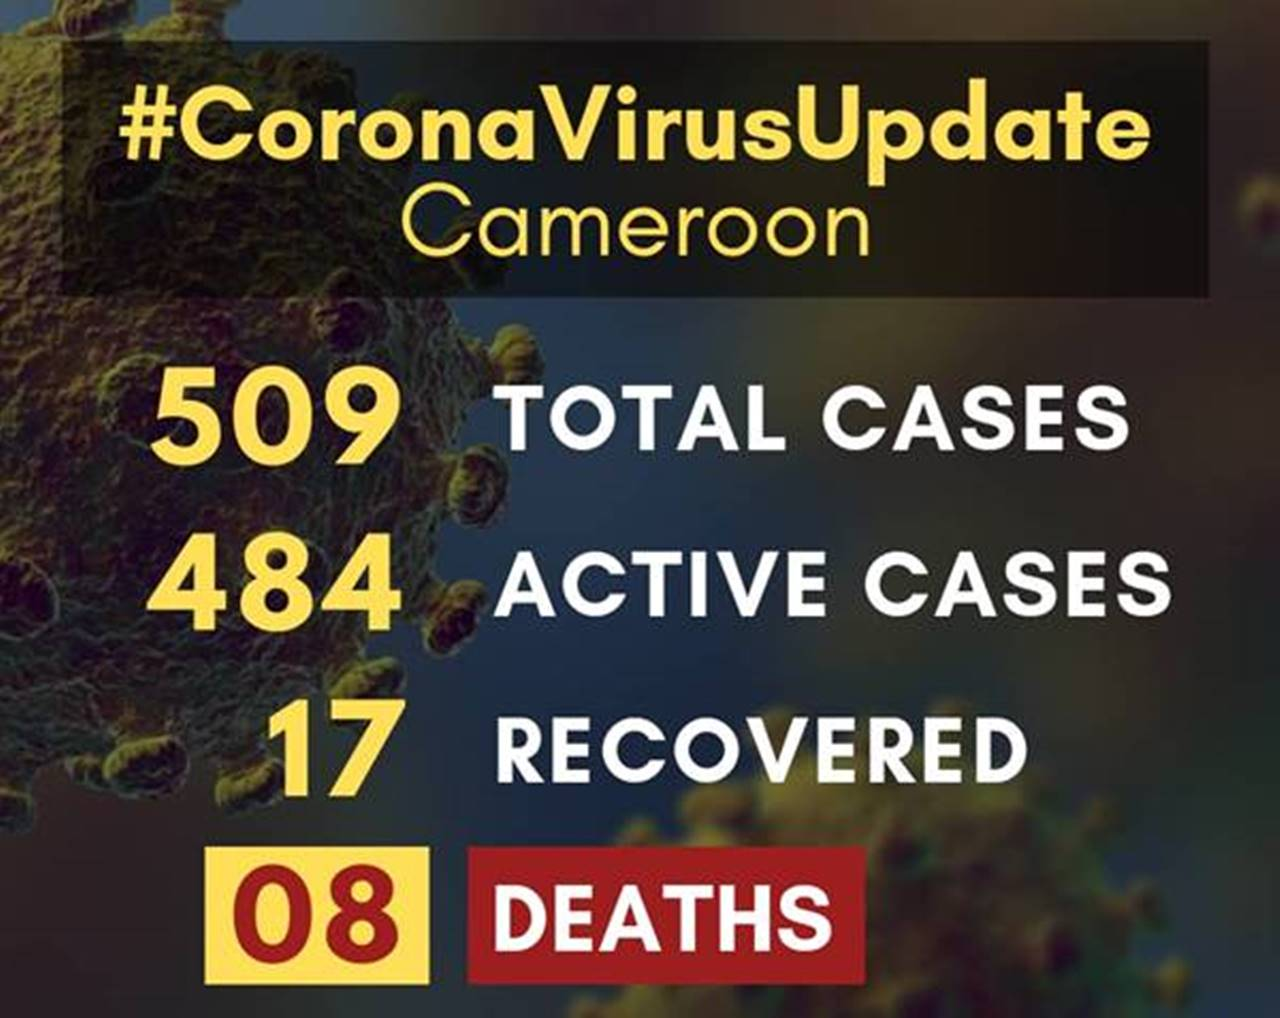 Coronavirus cases in Cameroon surpass 500 as mortality climbs to 8